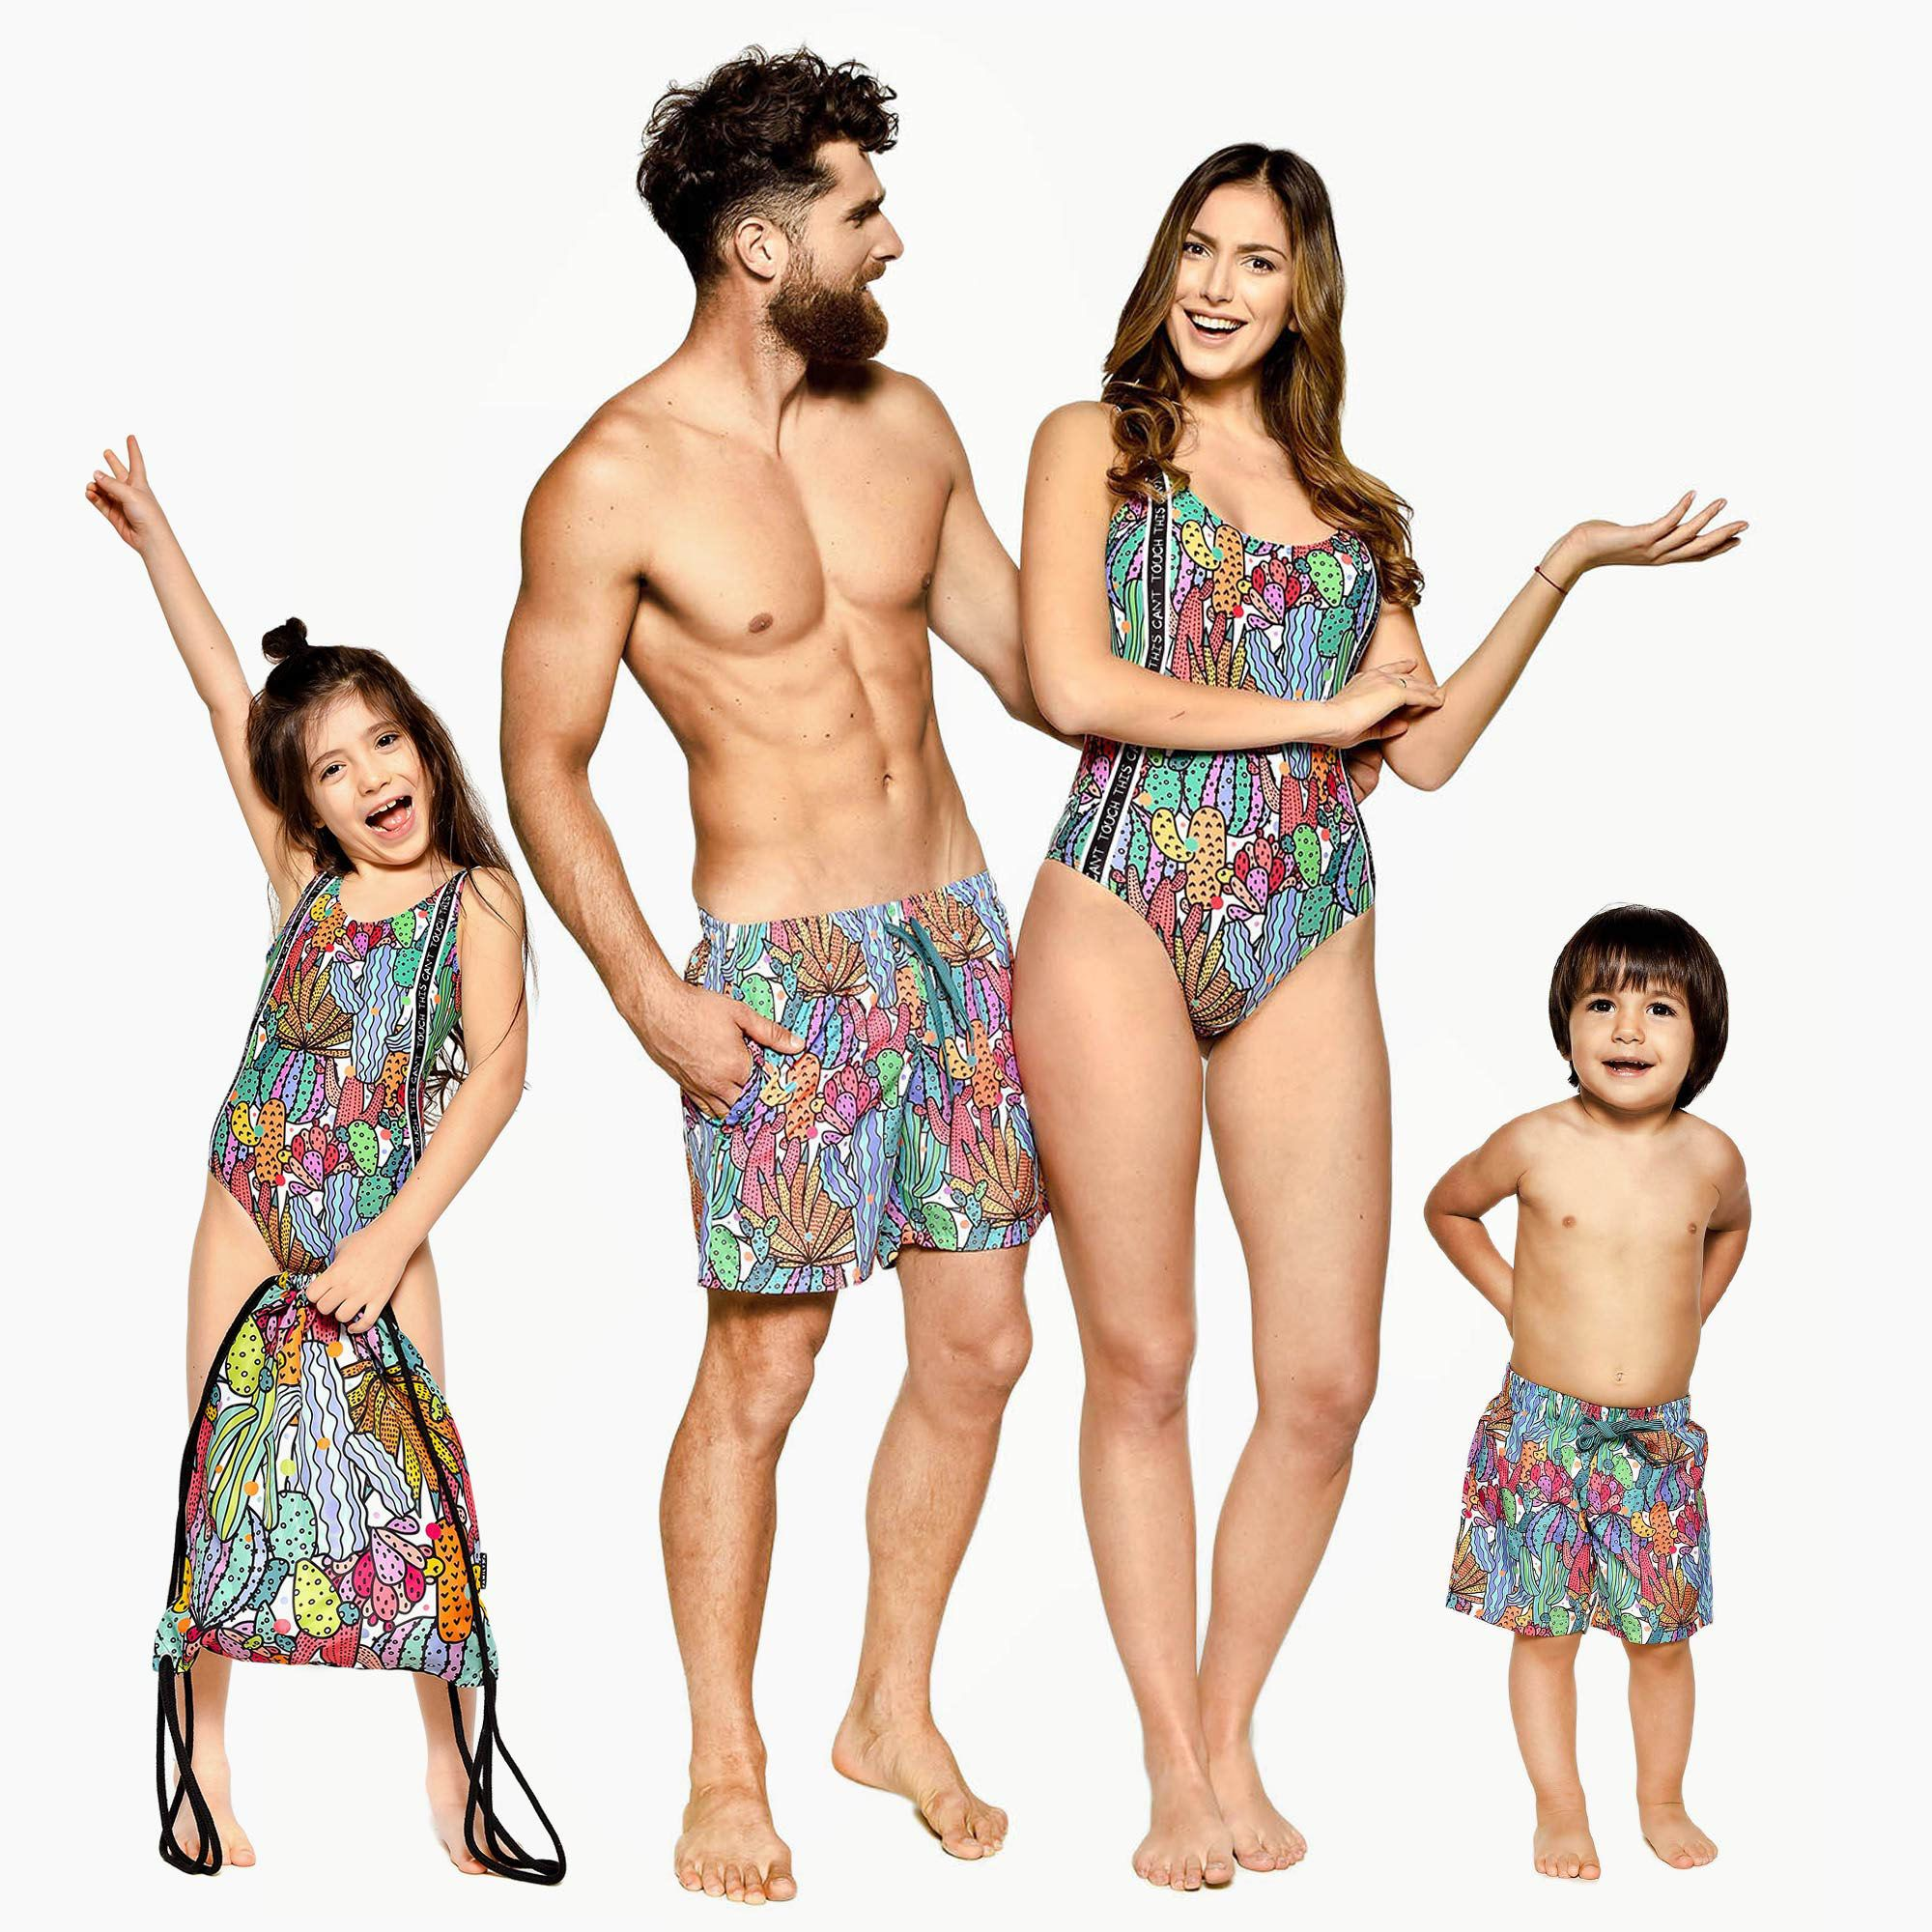 852510c77e Family Swimsuit, Kids Swimwear, Matching Swimsuit, Cactus Swimsuit, Family  Matching Set, Cactus Swimwear, Floral Swimsuit, Mommy And Daddy